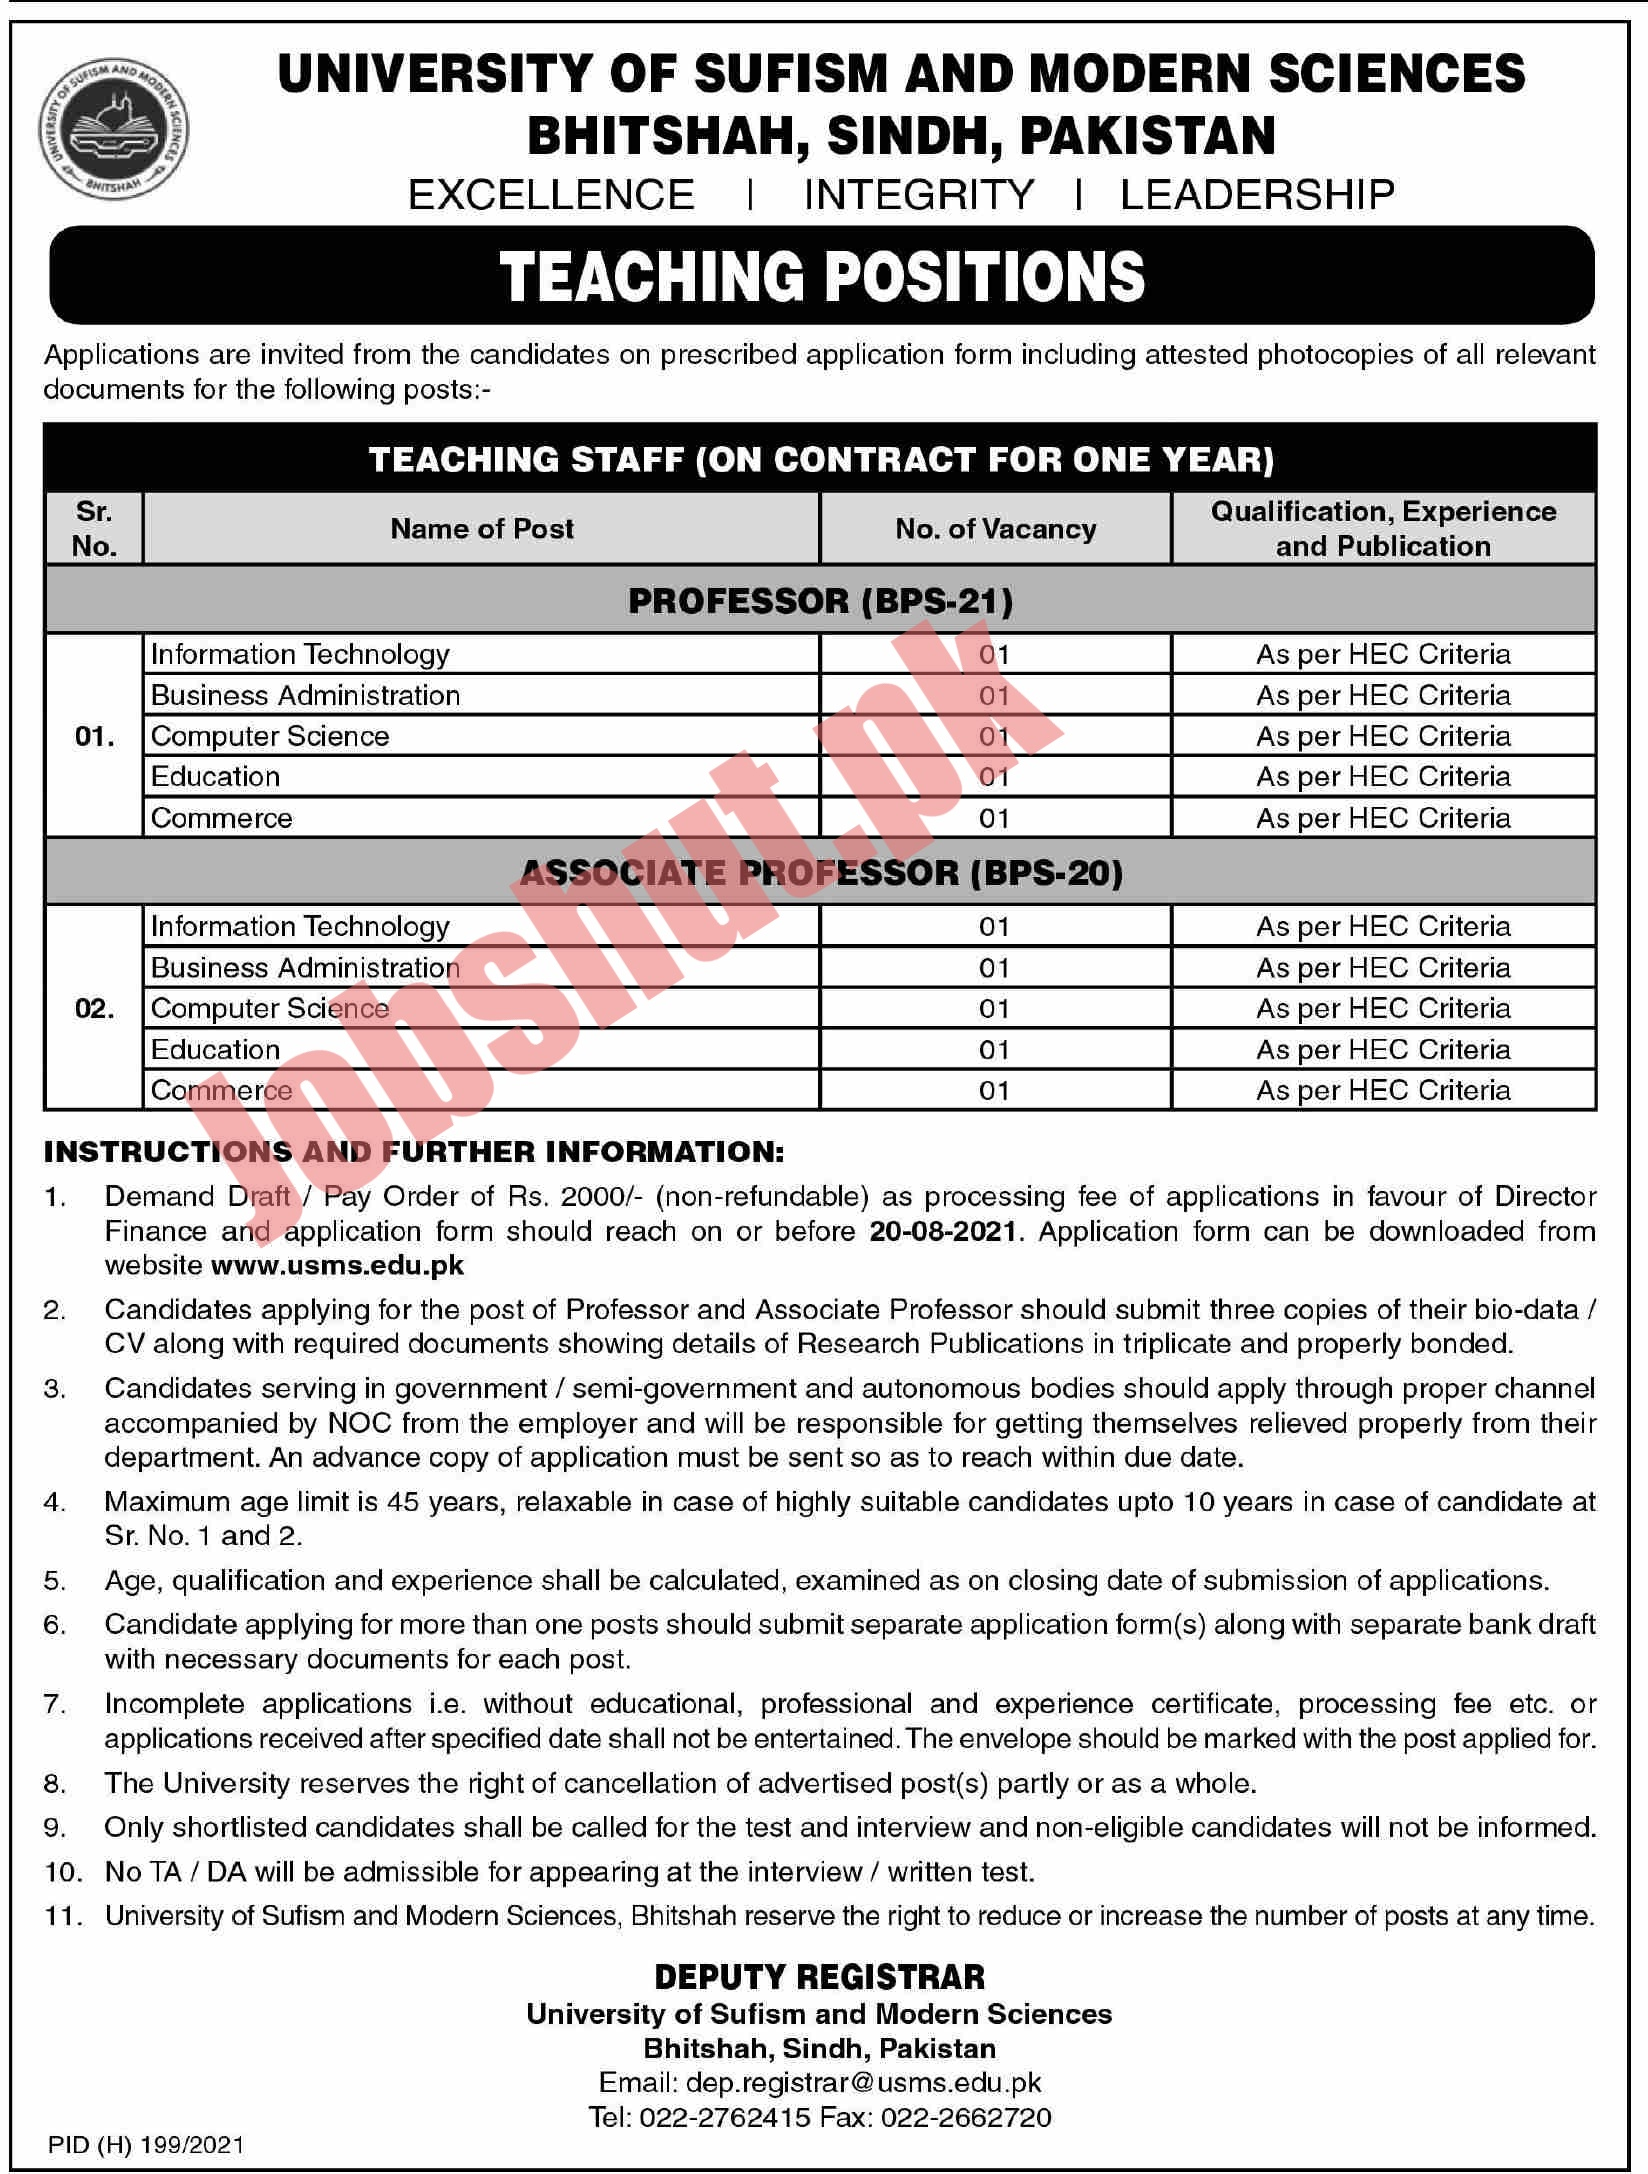 The University Of Sufism and Modern Sciences Bhitshah jobs advertisement